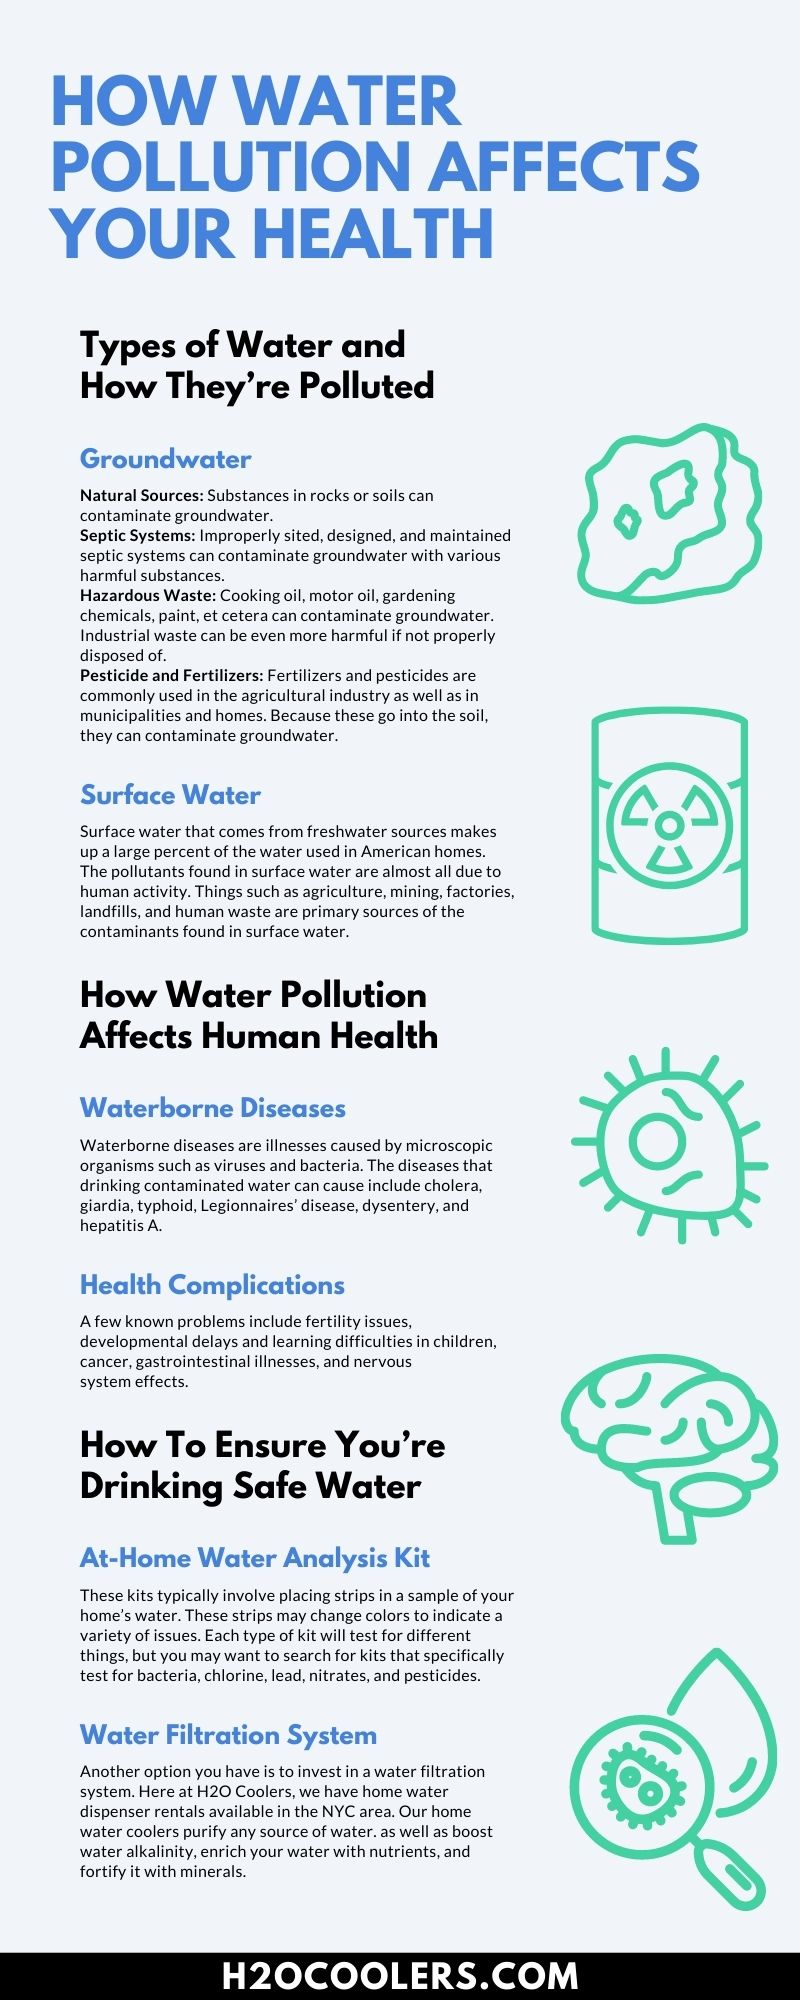 How Water Pollution Affects Your Health